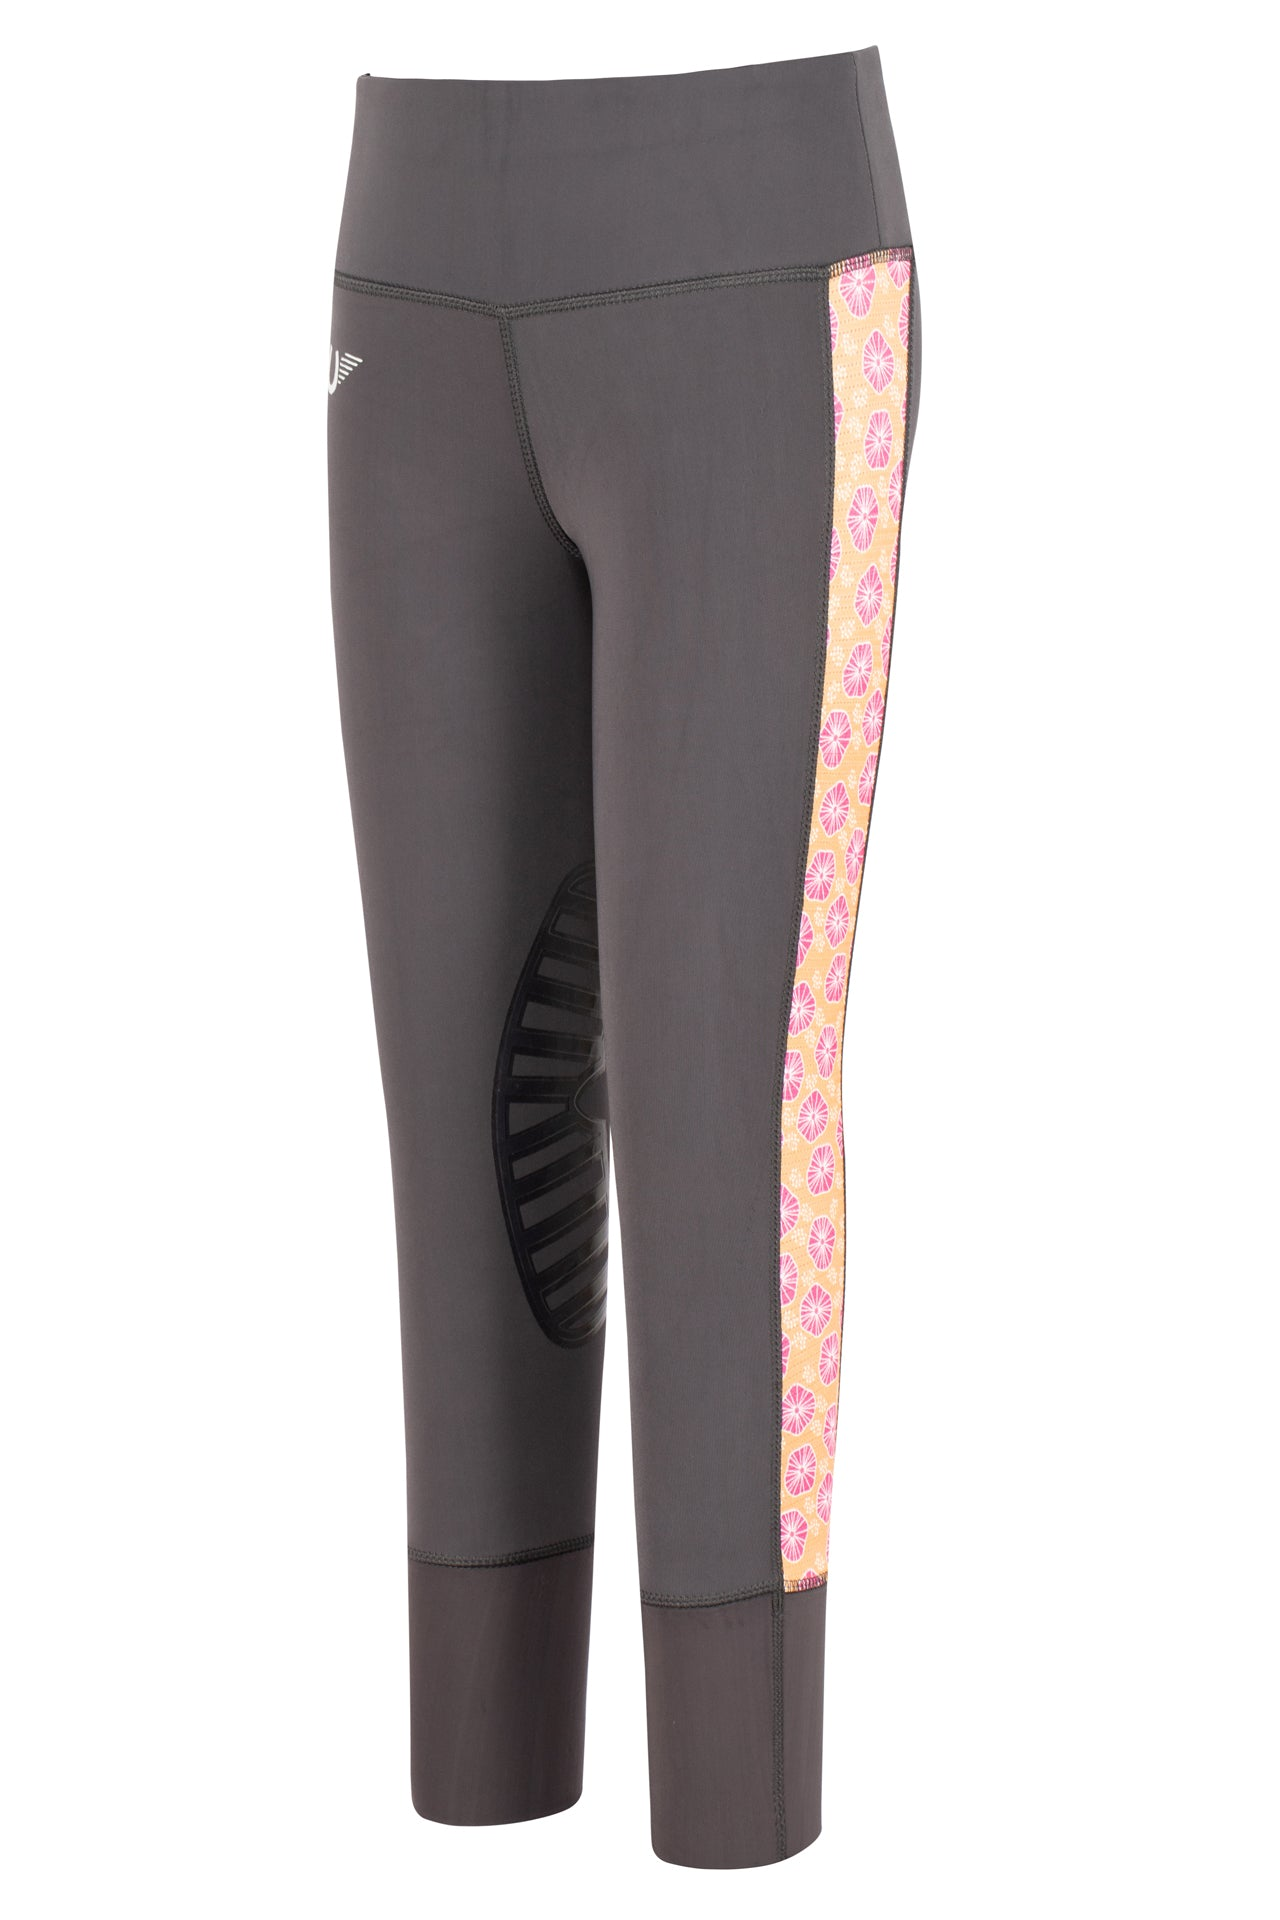 TuffRider Children's Athena EquiCool Riding Tights - Breeches.com